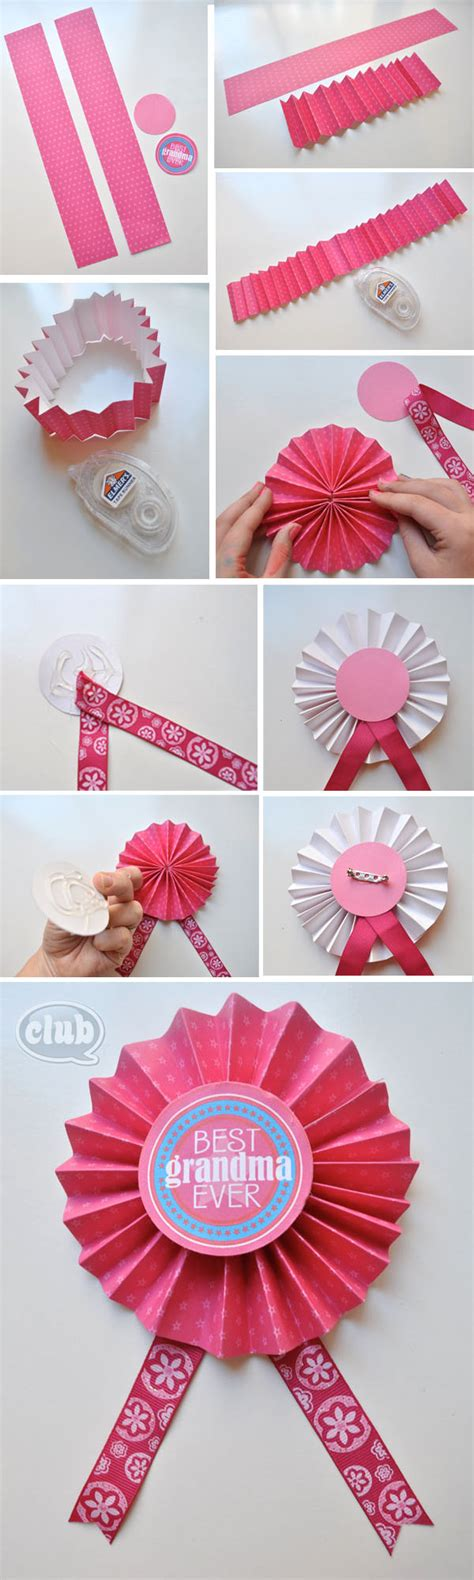 printable paper medals best grandma ever medal tutorial and mother s day printables